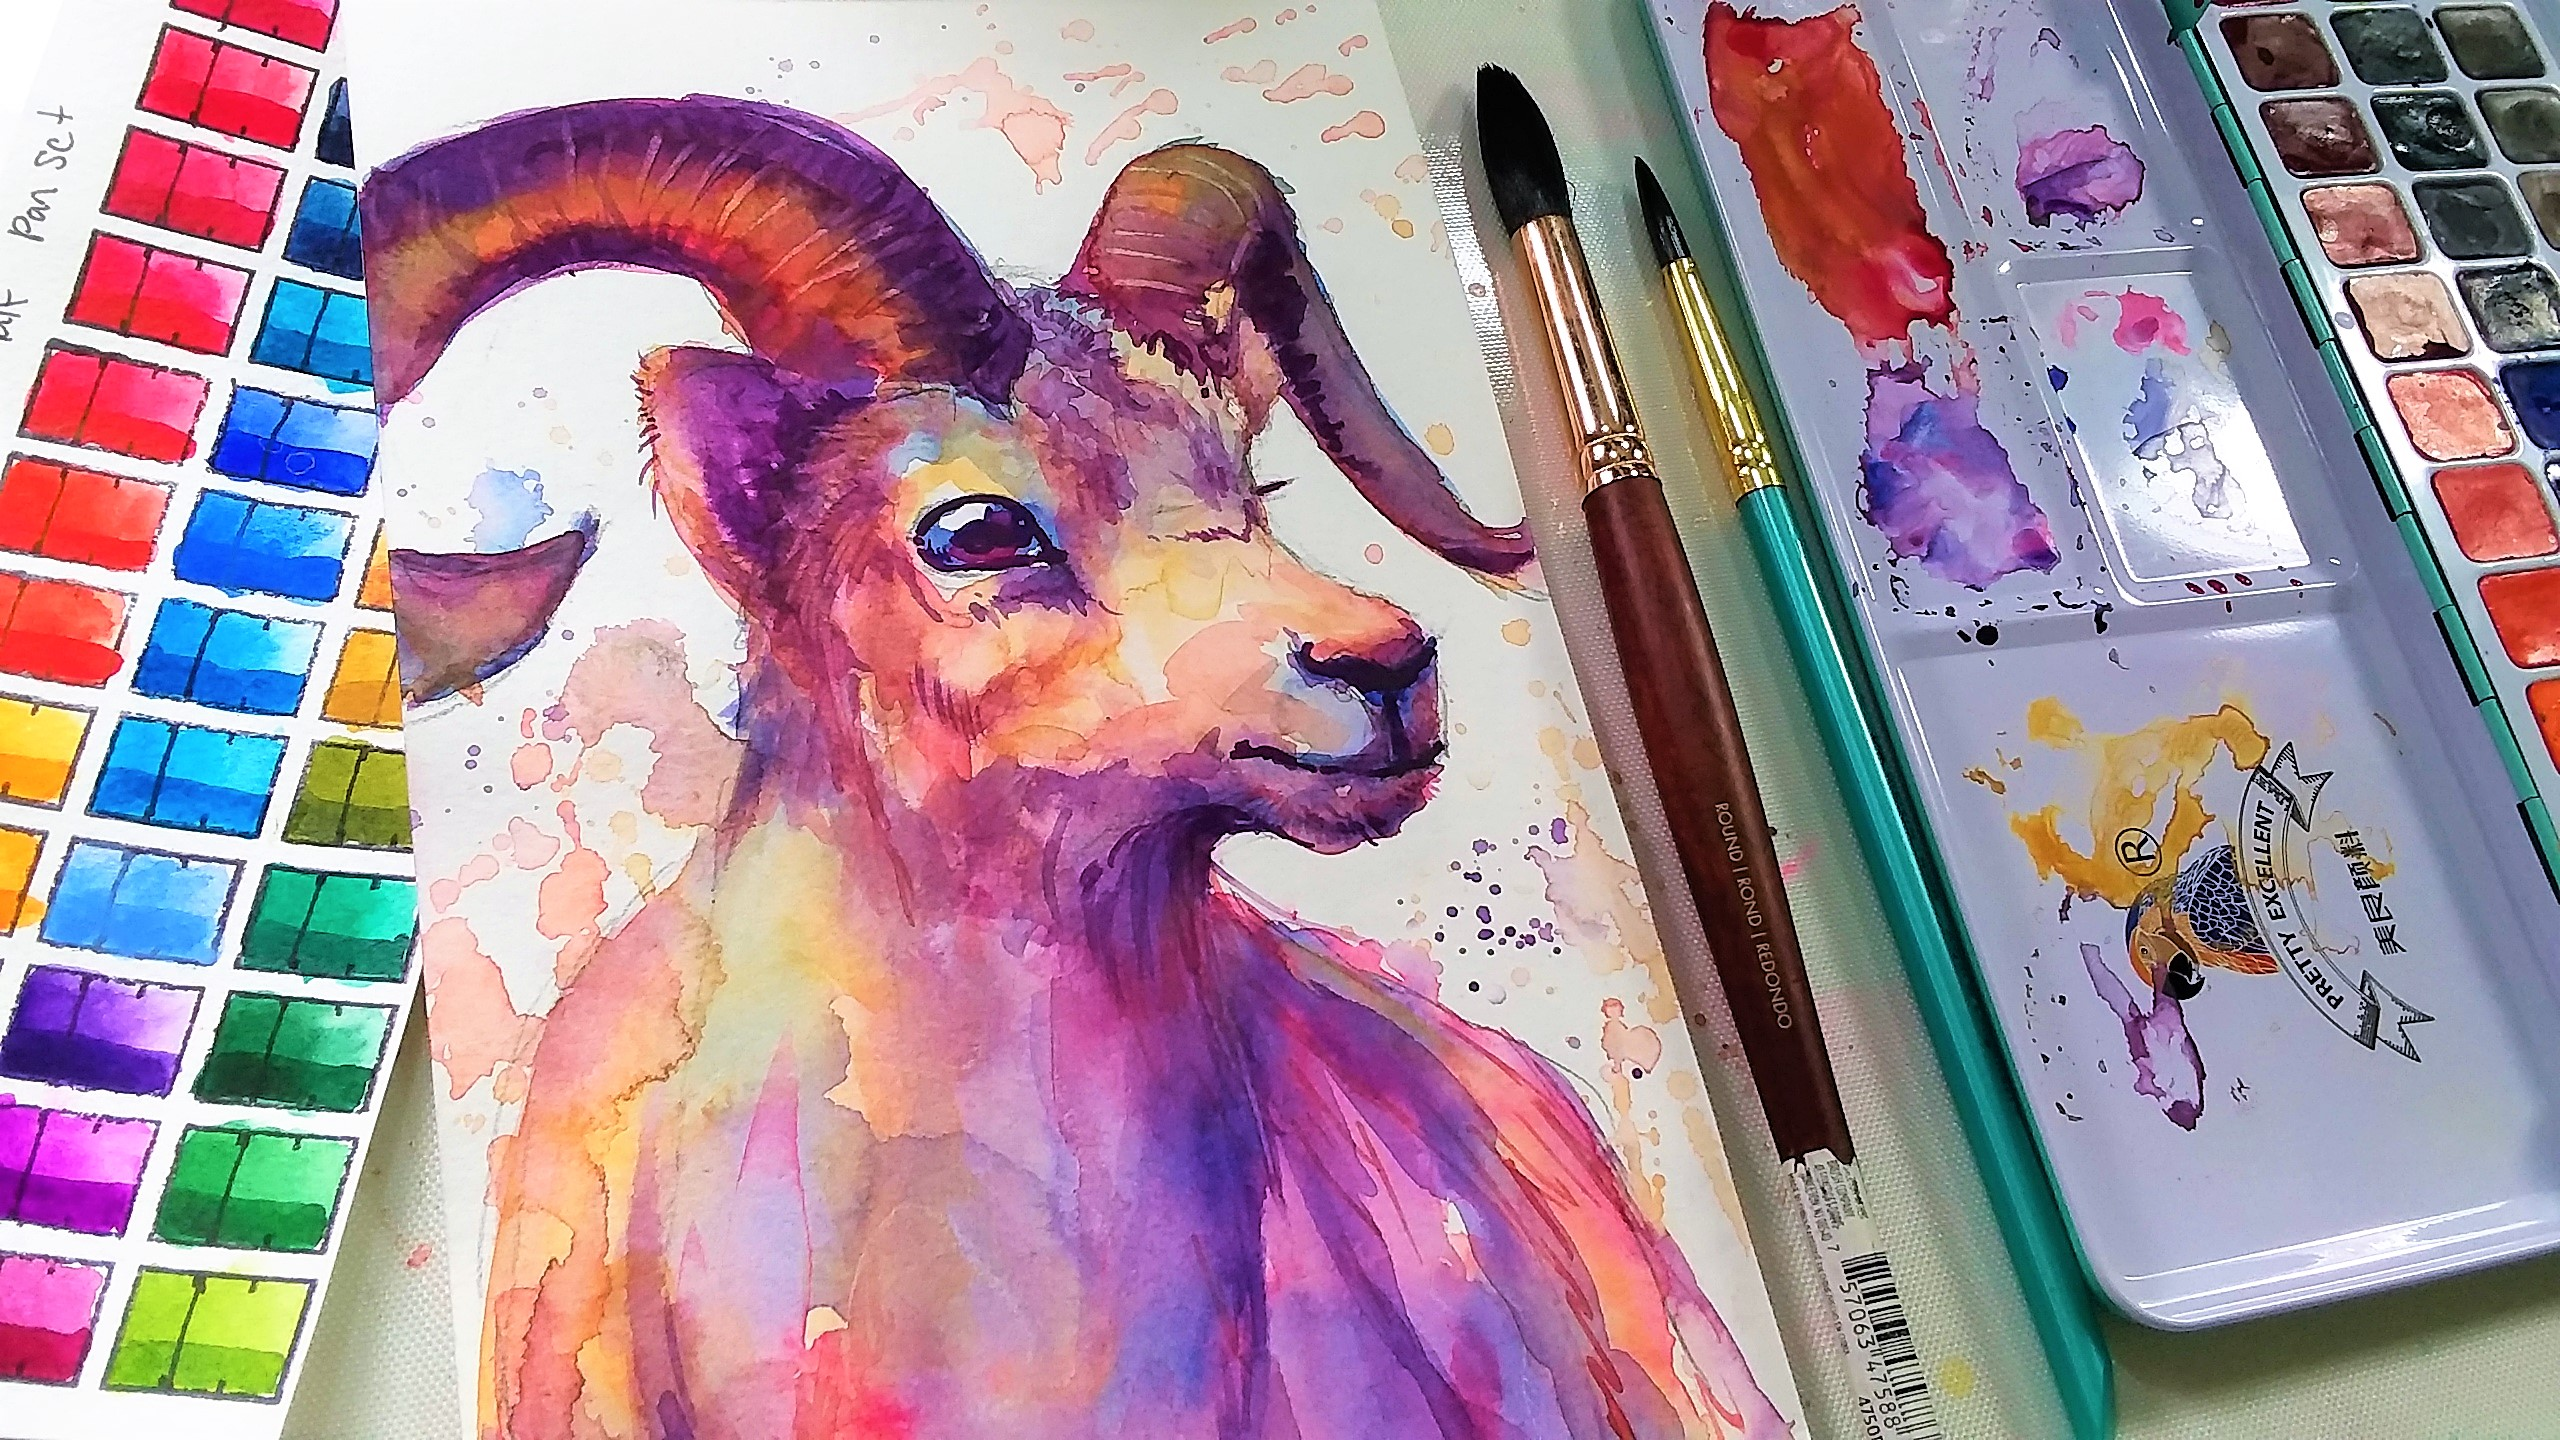 Let's Paint a Colorful Ram in Watercolor!